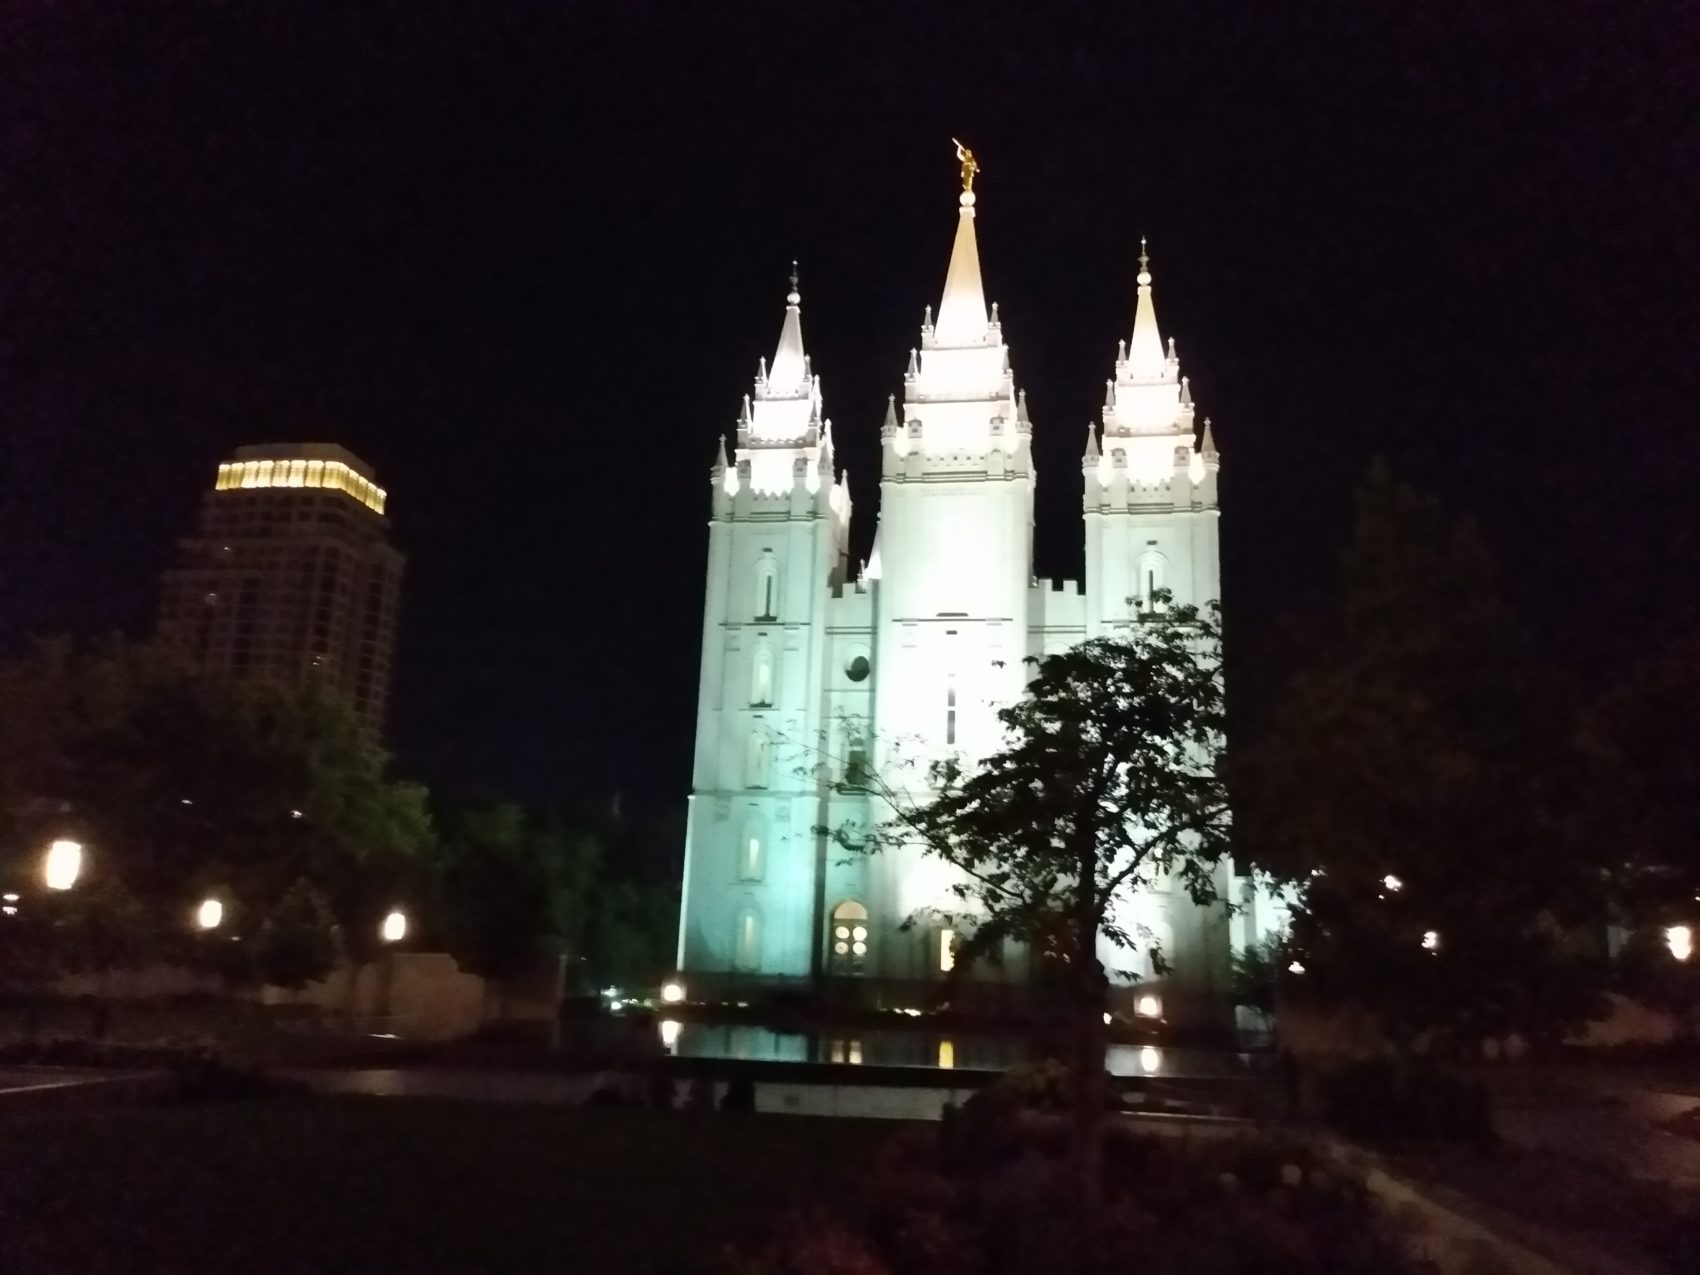 Fun way to sight see in Salt Lake City